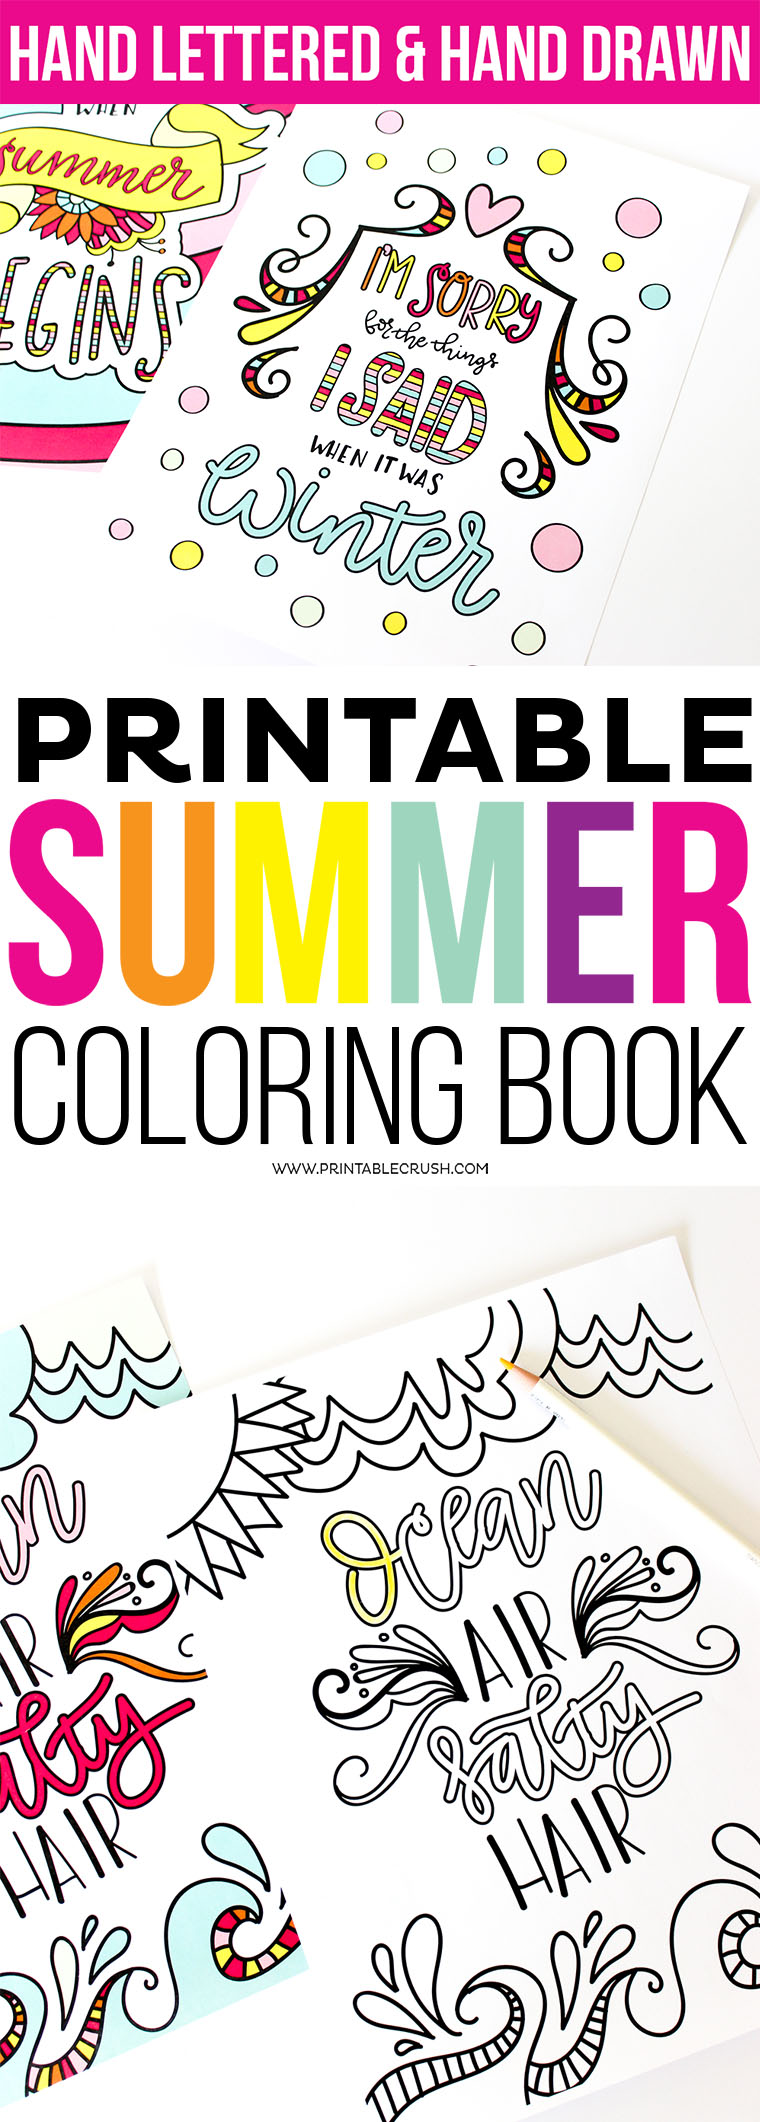 """Enjoy Coloring these Hand Lettered Coloring Pages for Adults or Kids! Includes 9 Coloring Pages and art prints for each design in 8""""X10"""" and 5""""X7"""" sizes."""